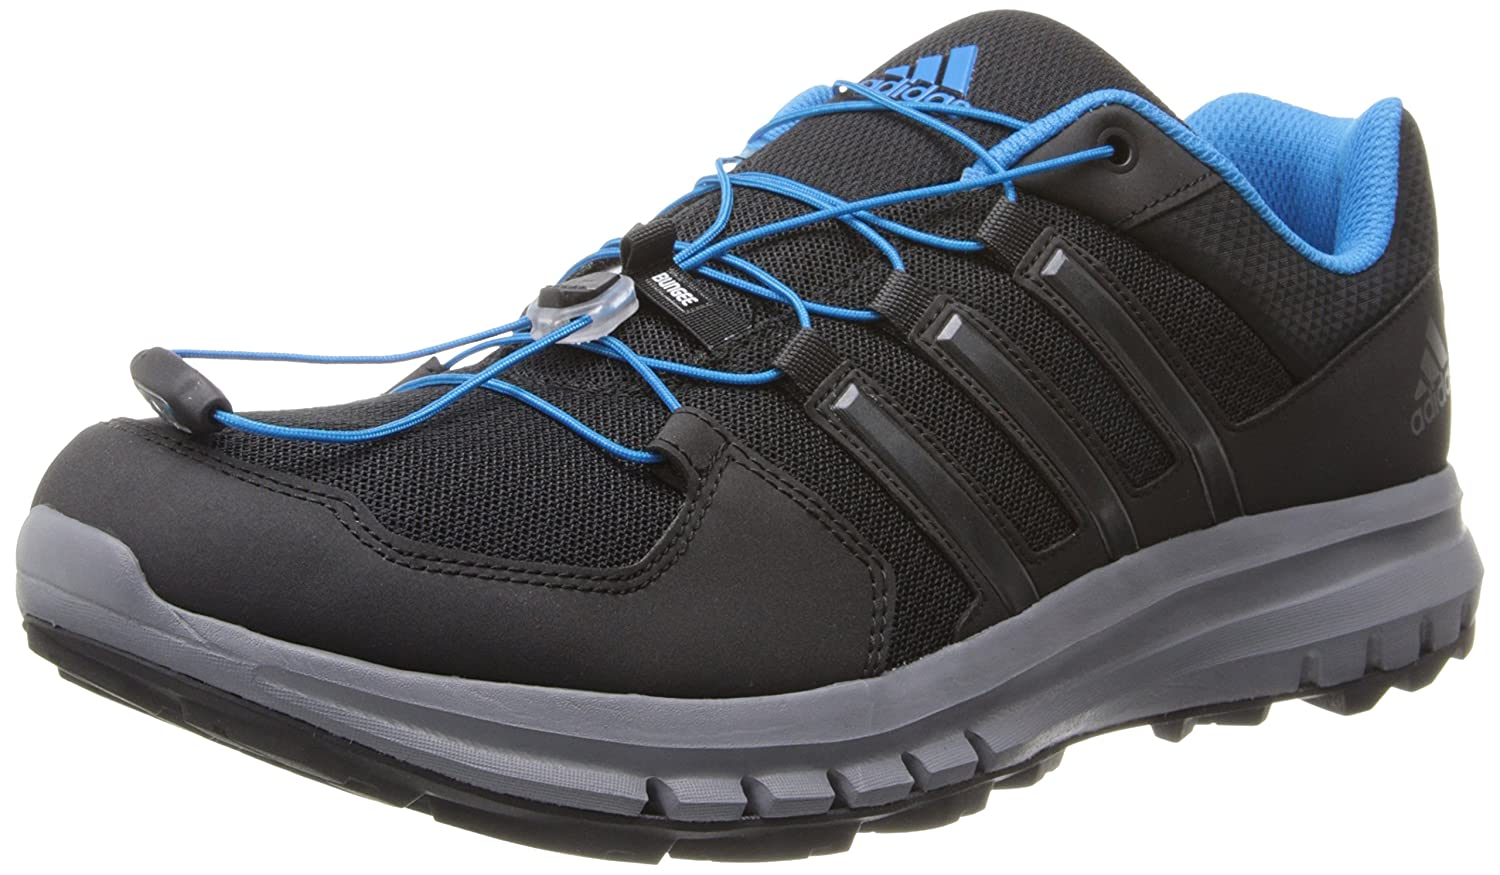 adidas Outdoor Duramo Cross X Trail Hiking Shoe - Men's